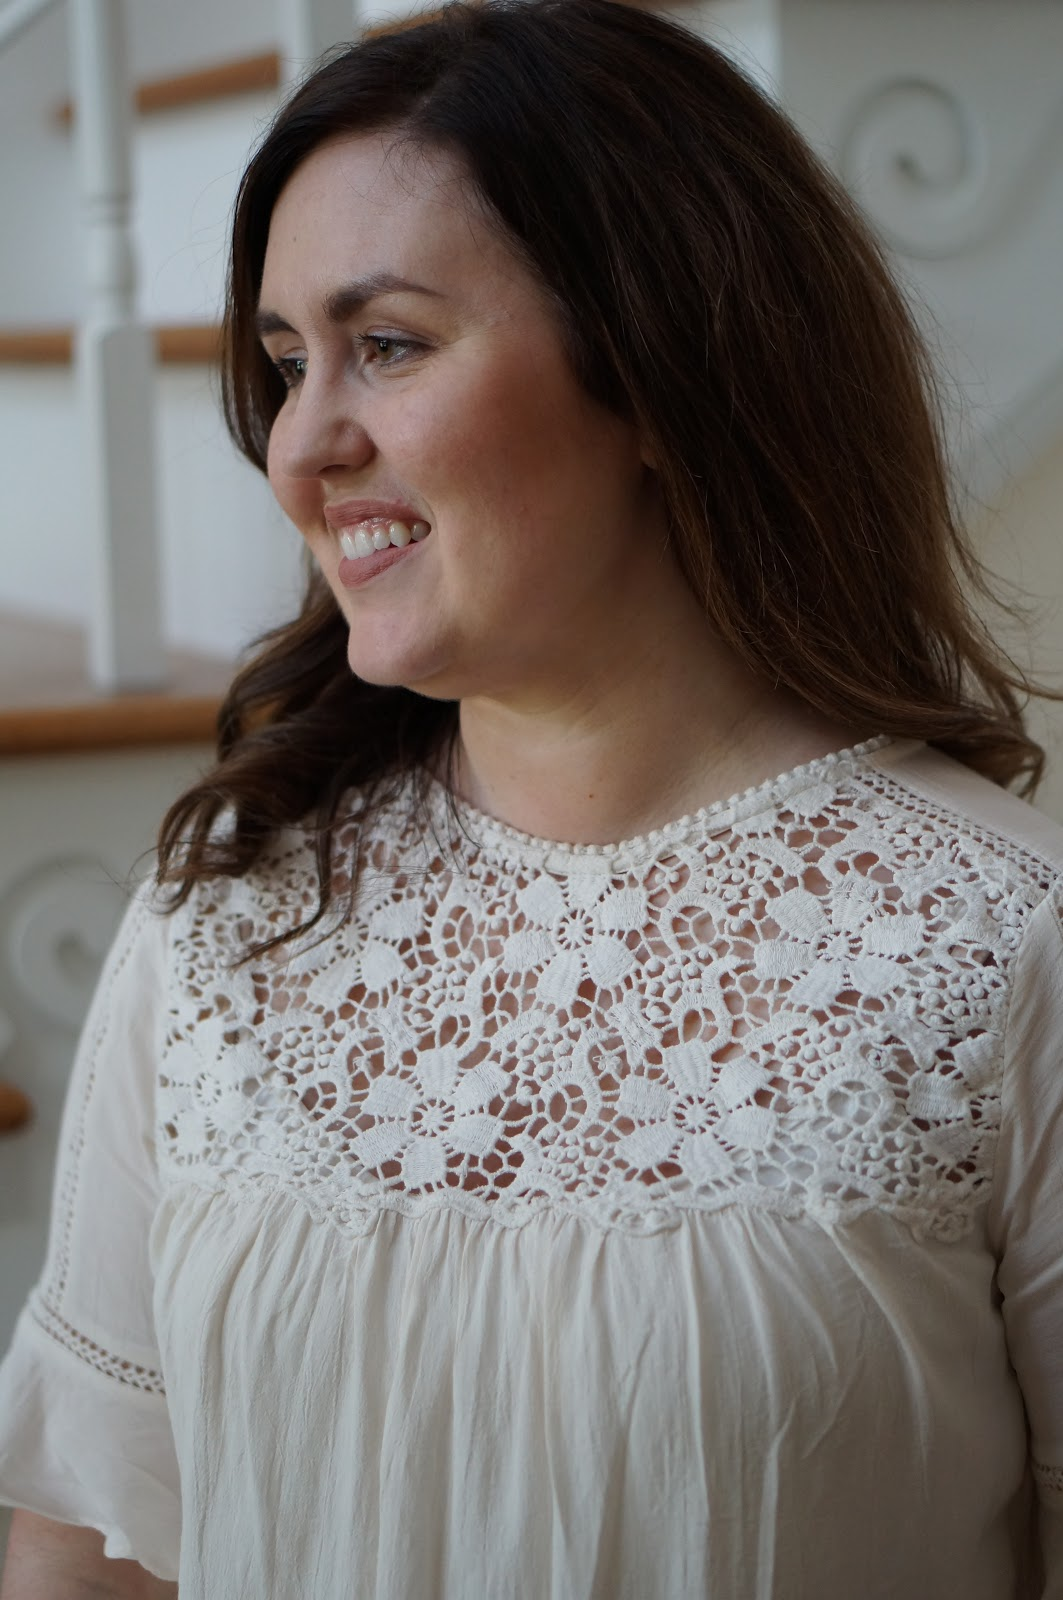 Popular North Carolina style blogger Rebecca Lately shares a gorgeous lace yoke detail top.  Click here to read about this summer appropriate work look!